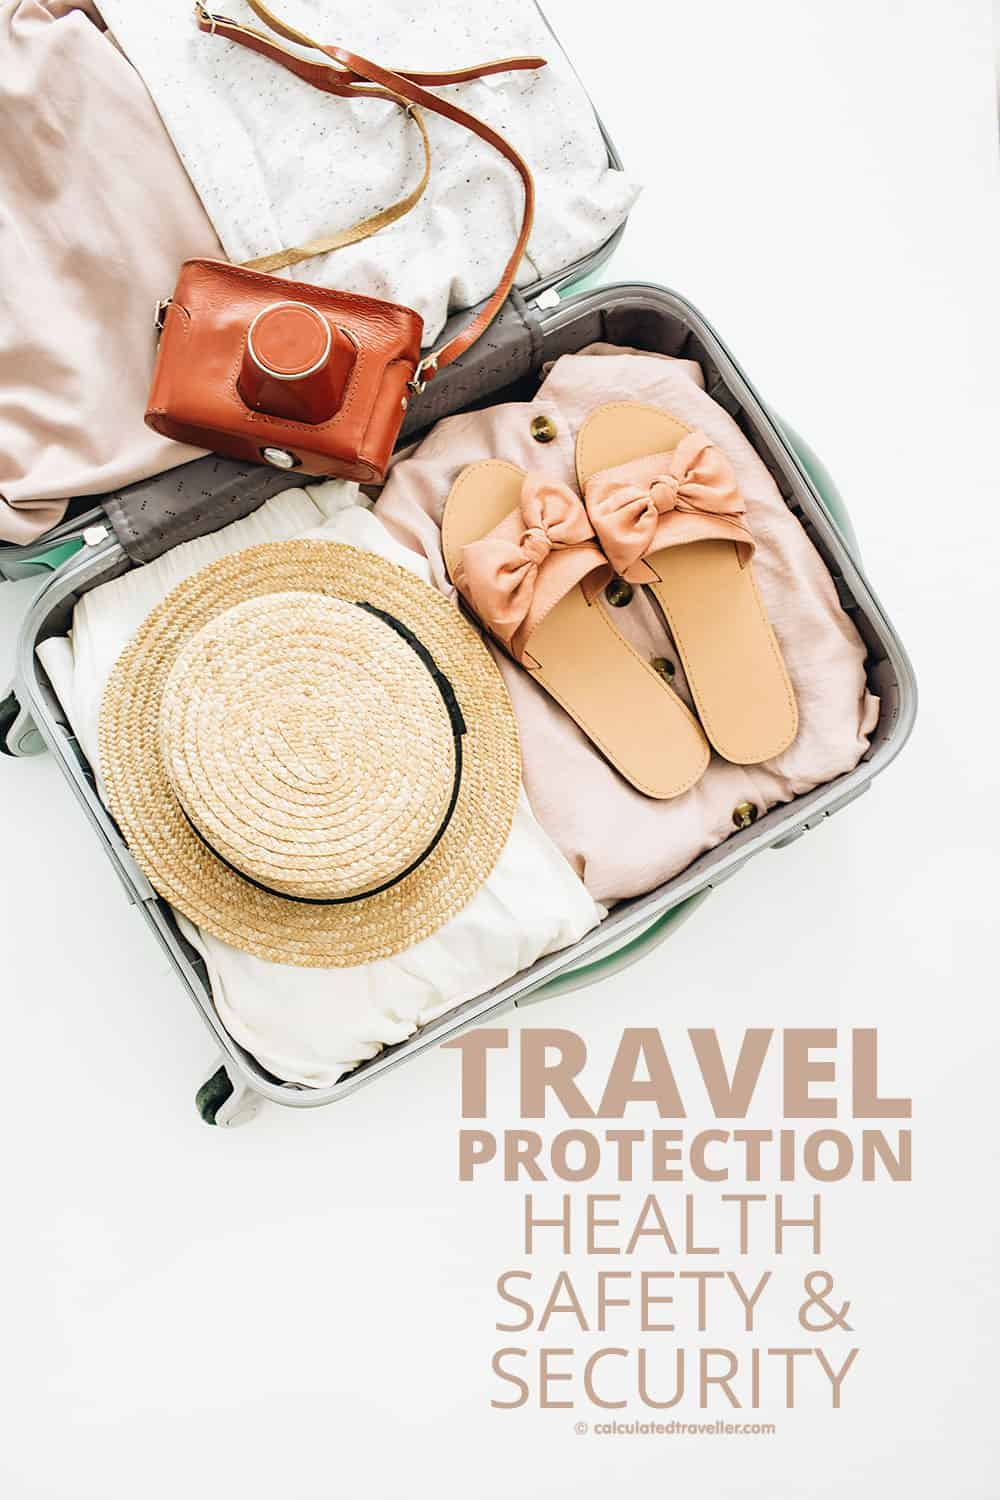 Travel Protection - Health, Safety, and Security | #travel #security #safety #insurance #health #illness #protection